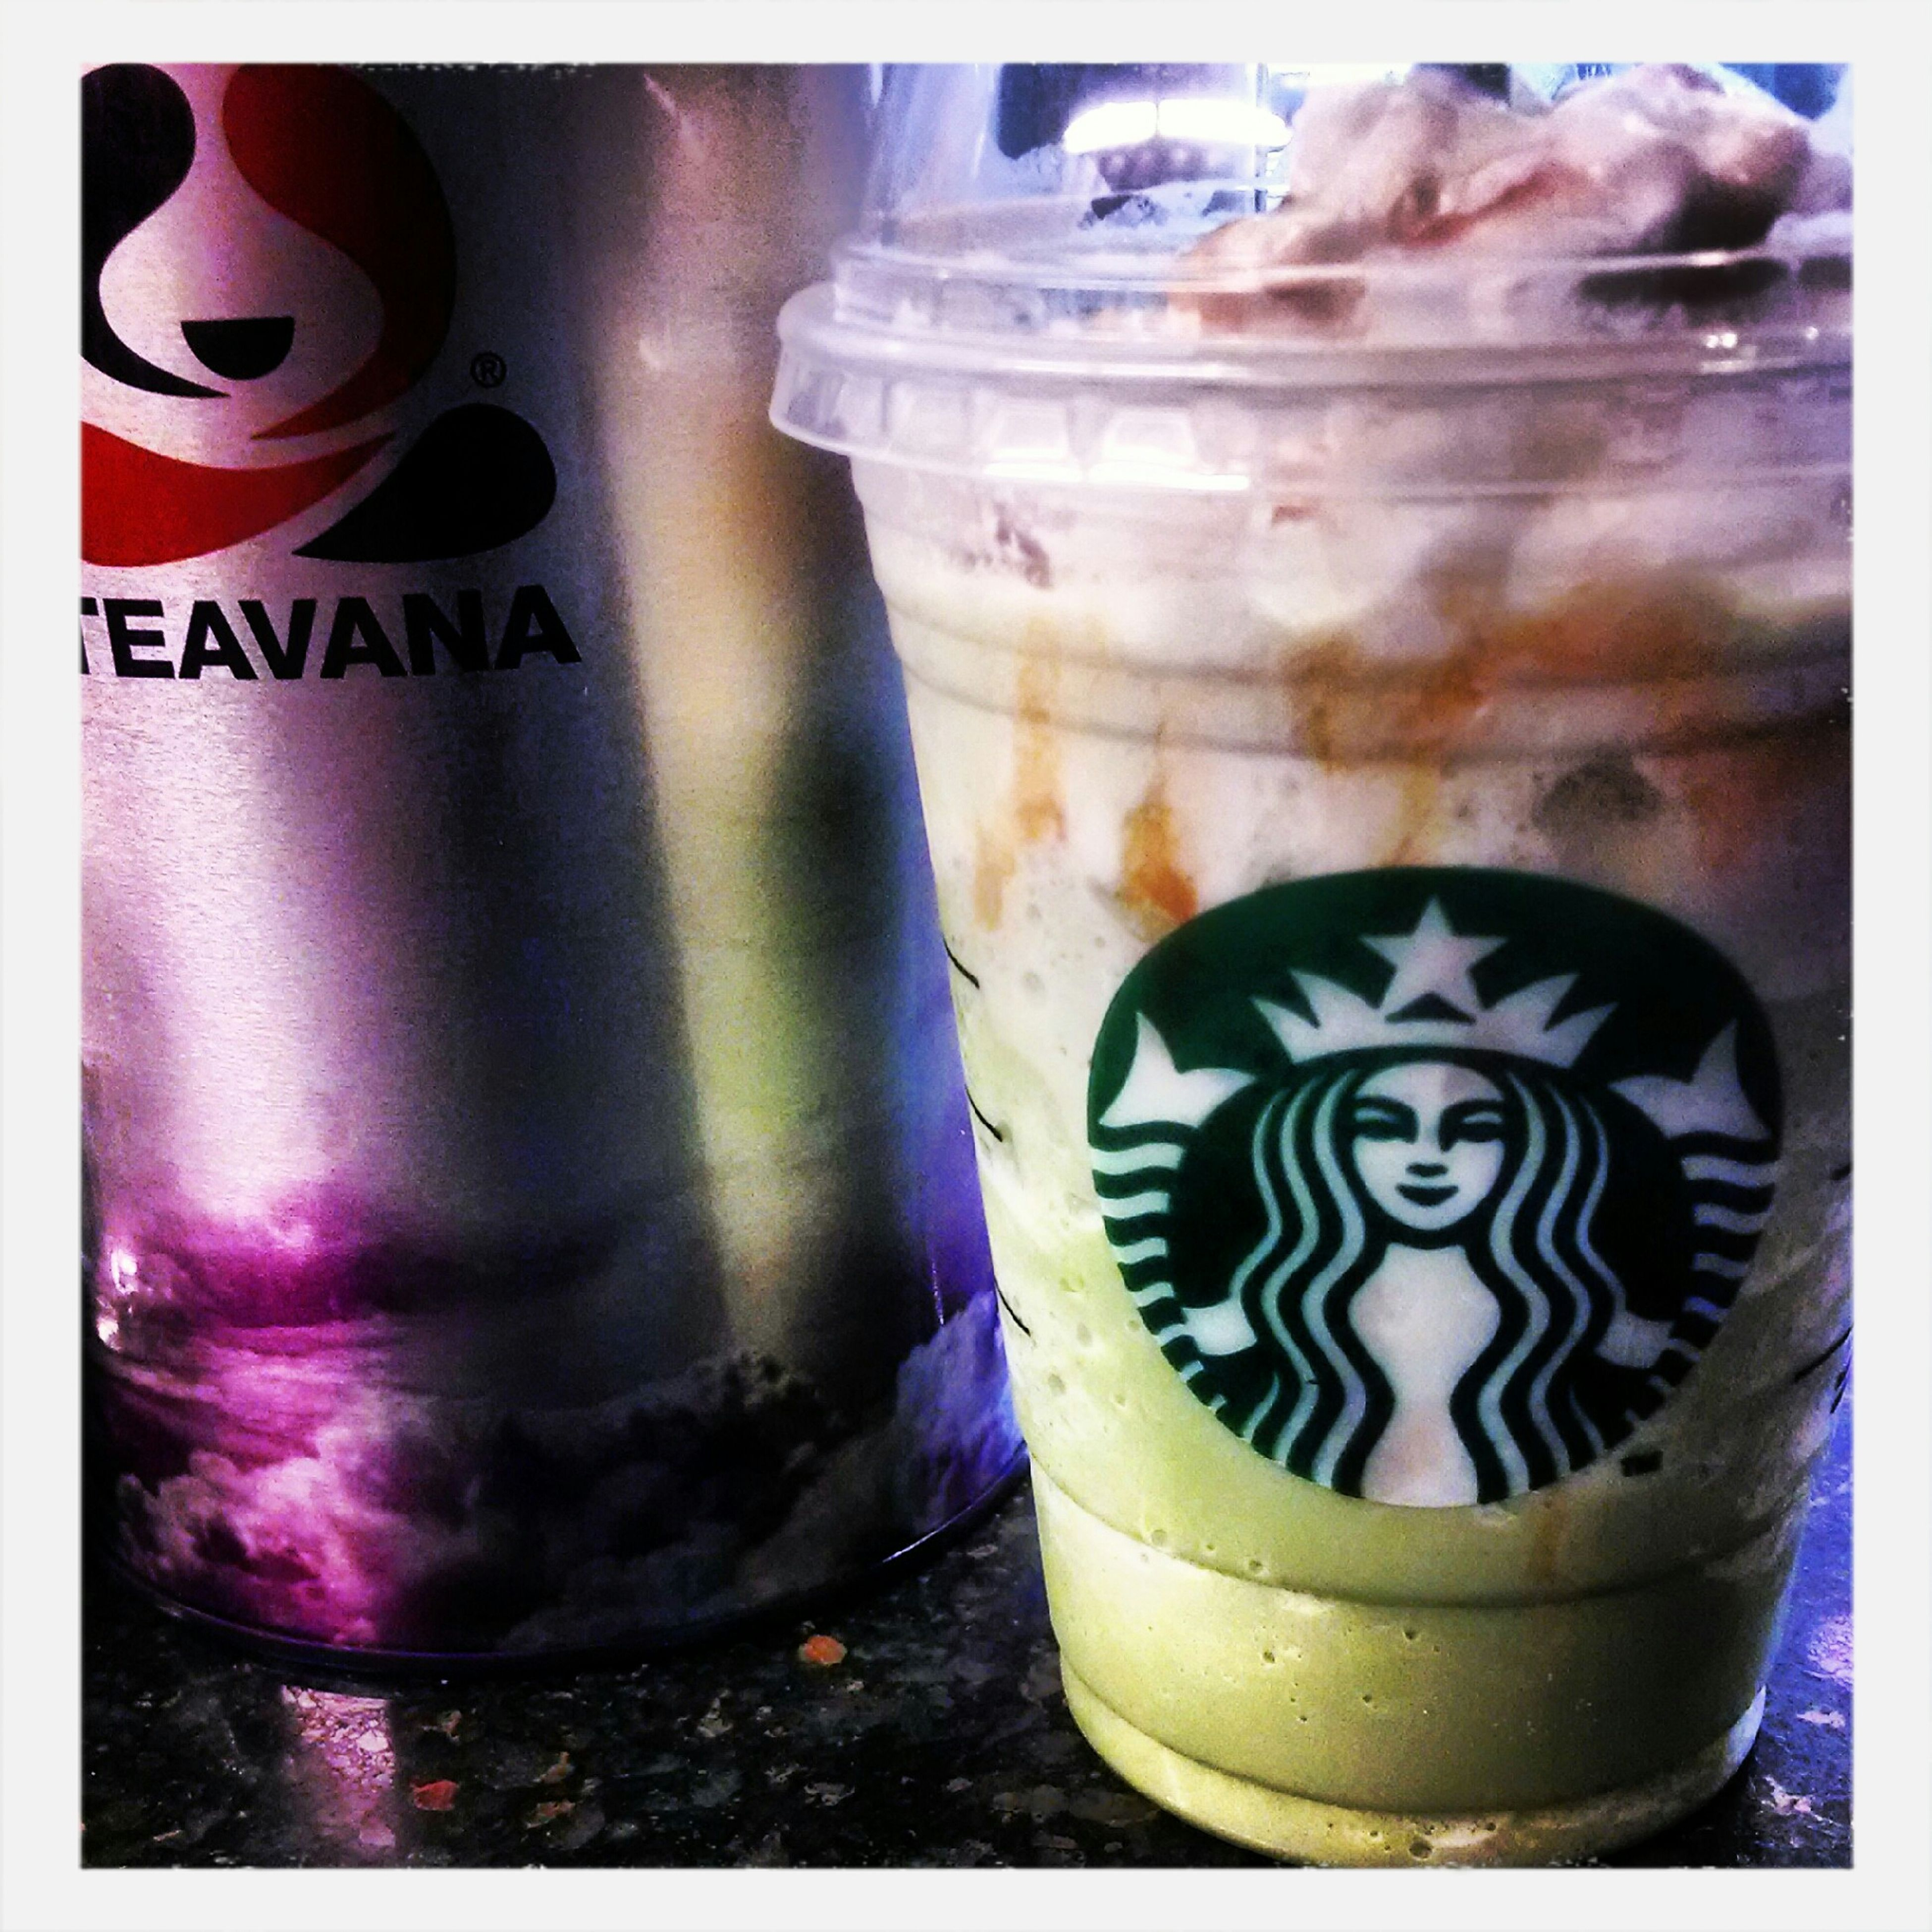 starbucks secret menu. pistachio pudding frapp. Starbucks Teavana Partners Matcha Frappucino